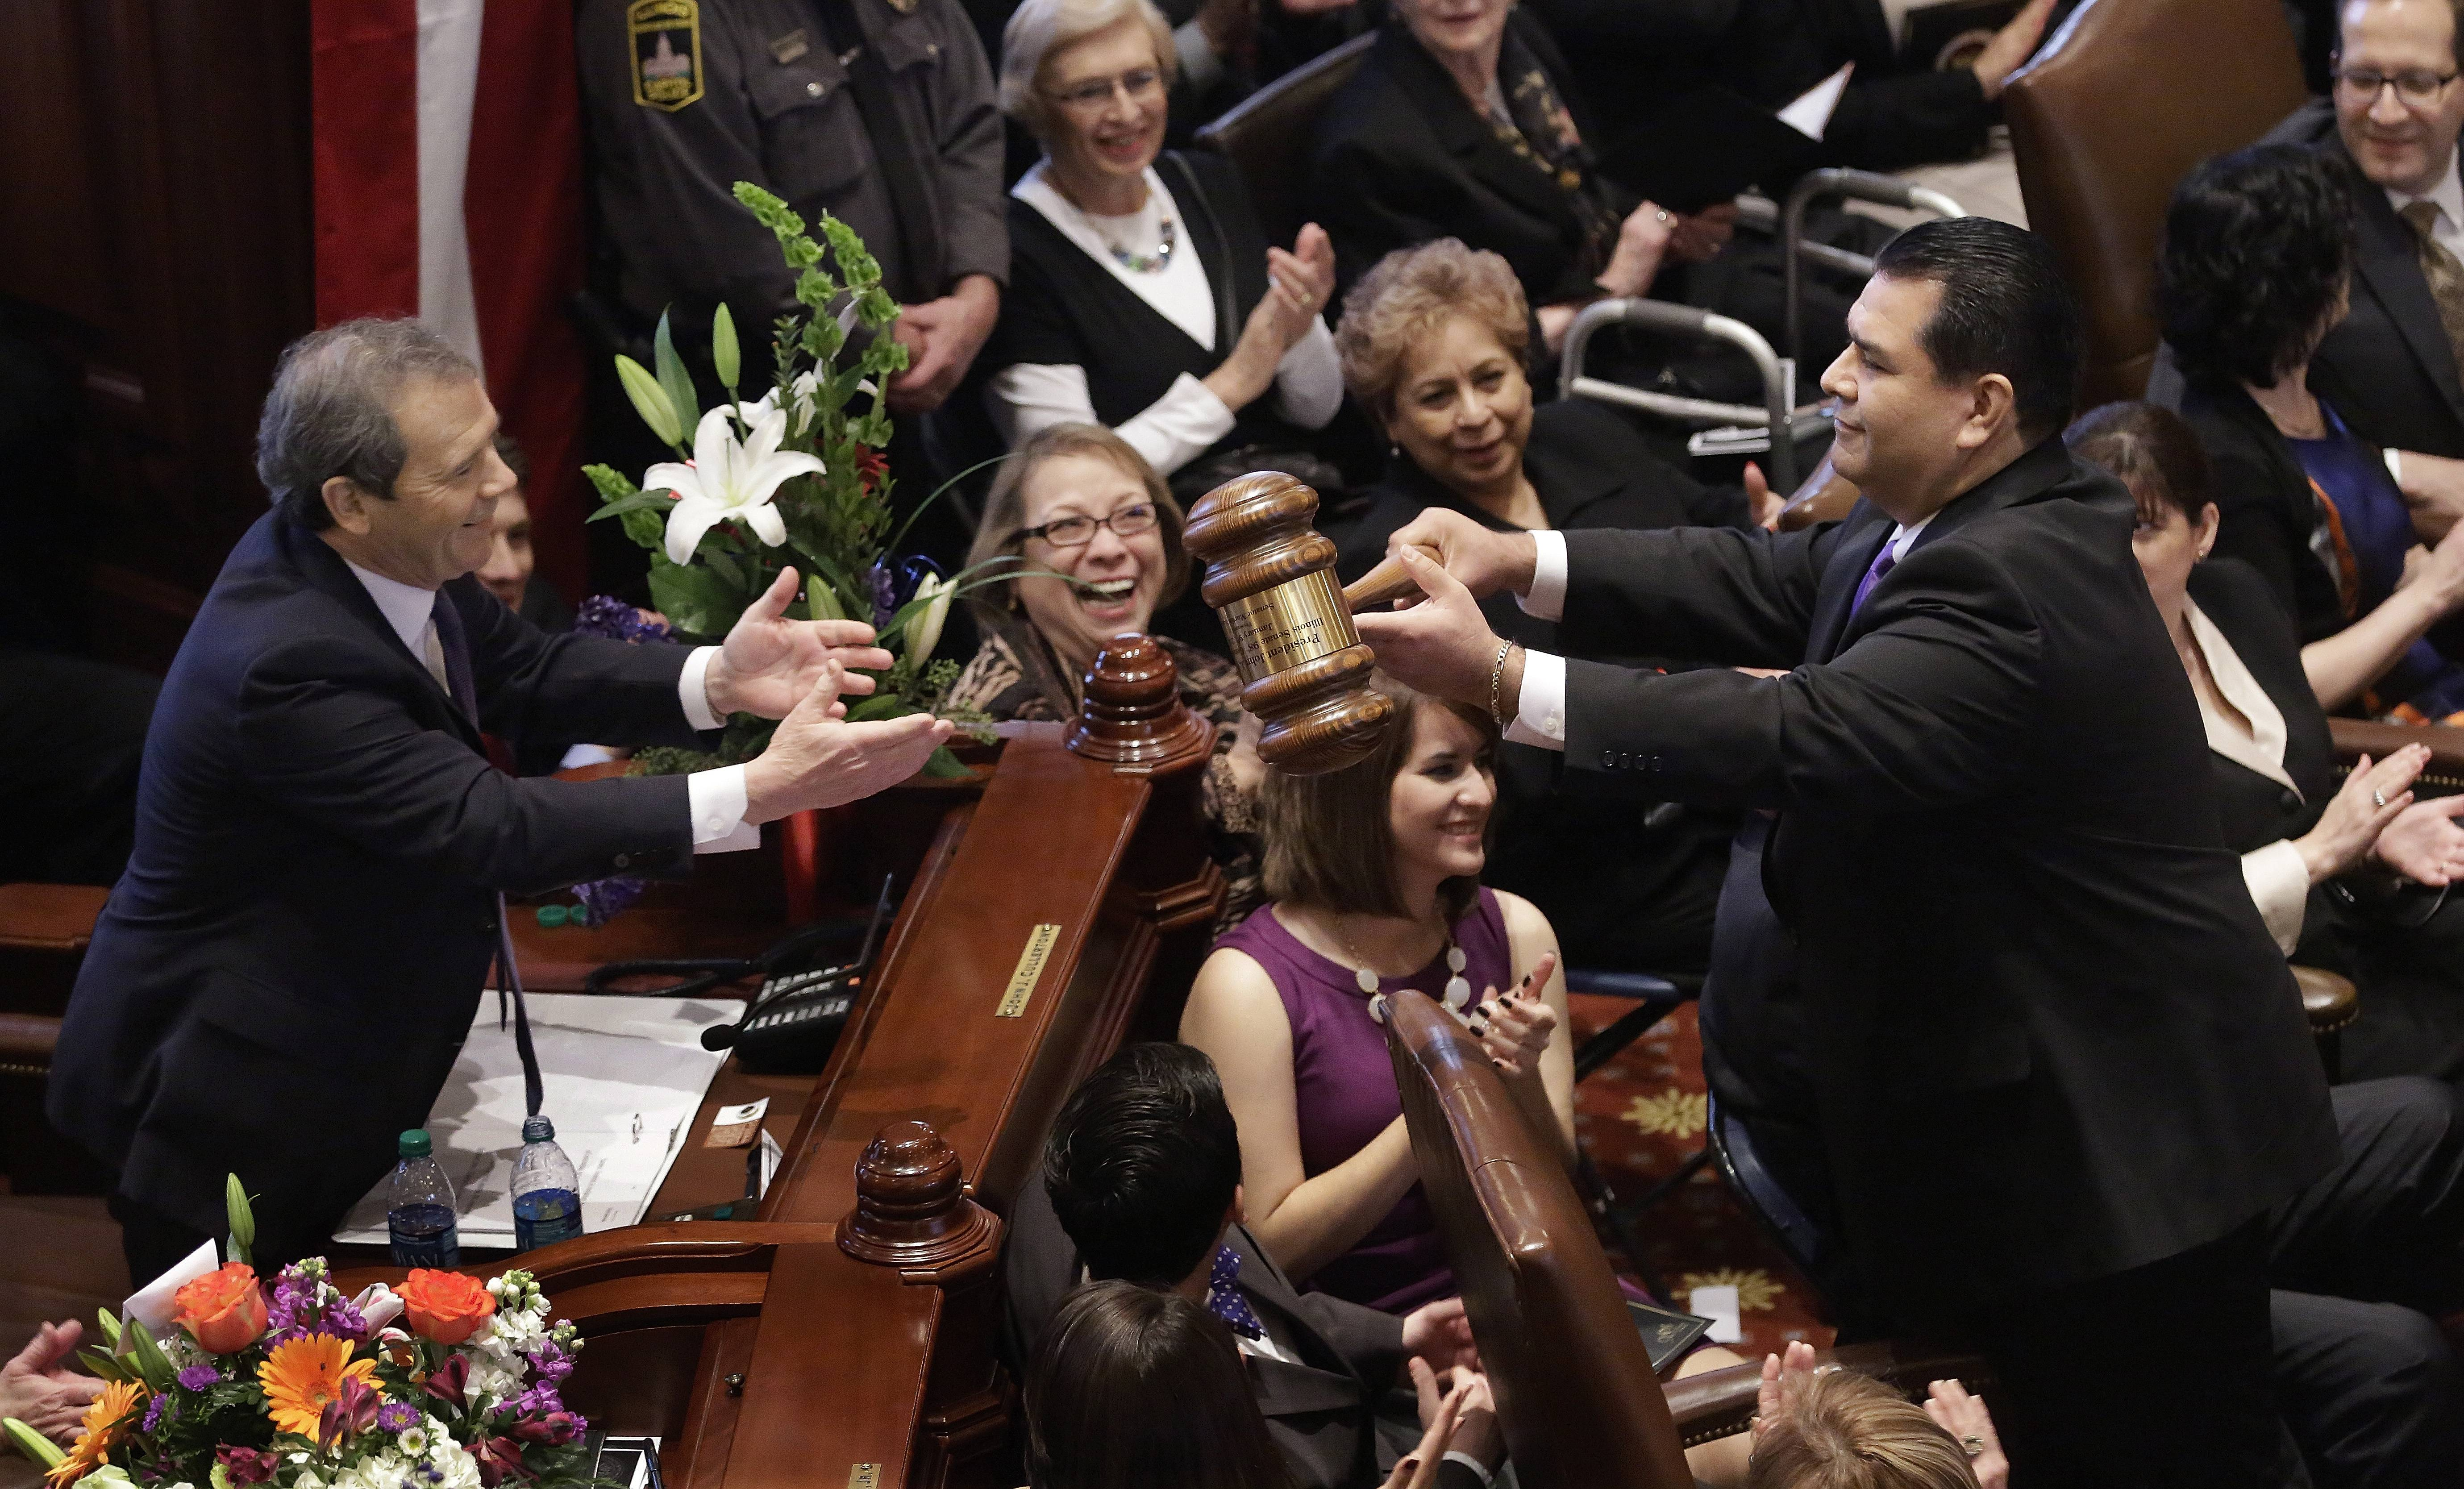 Illinois Senate President John Cullerton, a Chicago Democrat, left, is handed an oversized gavel by Illinois Sen. Martin Sandoval, a Cicero Democrat, Wednesday during swearing ceremonies on the Senate floor at the Illinois State Capitol.